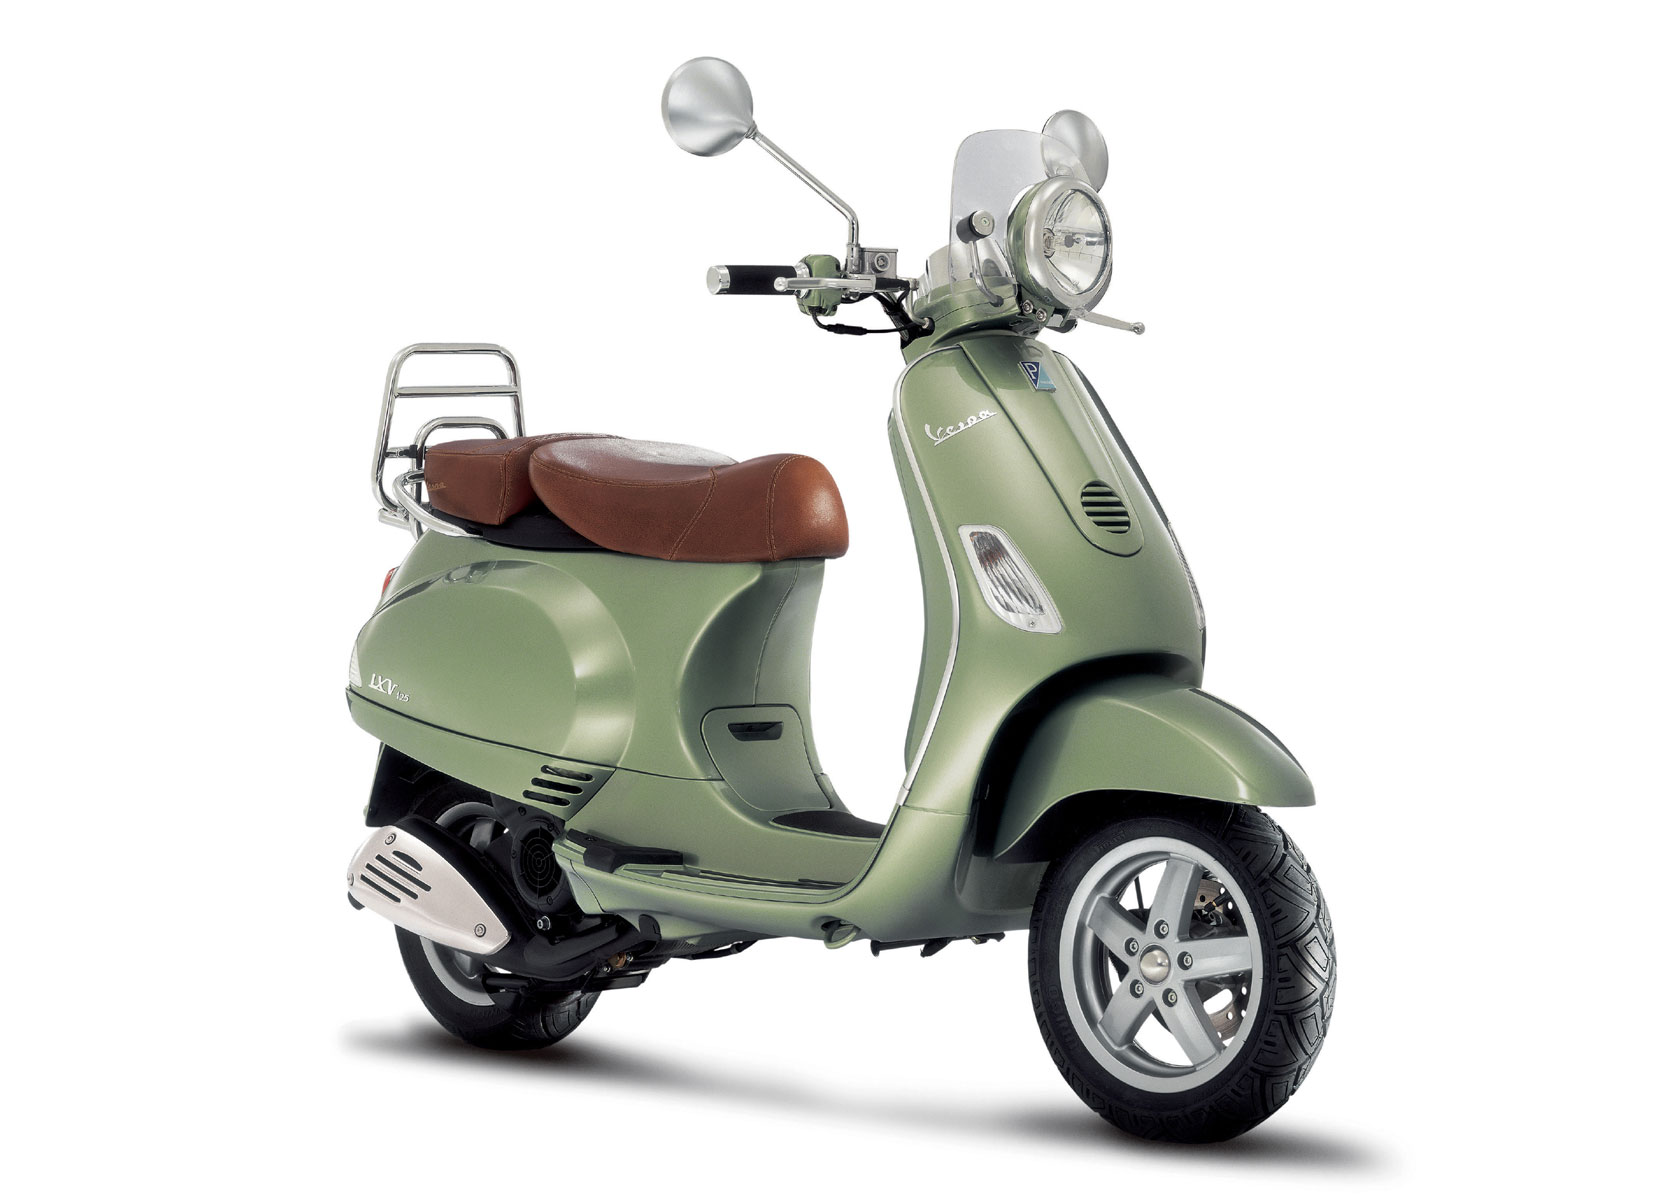 Vespa Images, Stock Pictures, Royalty Free Vespa Photos And Stock